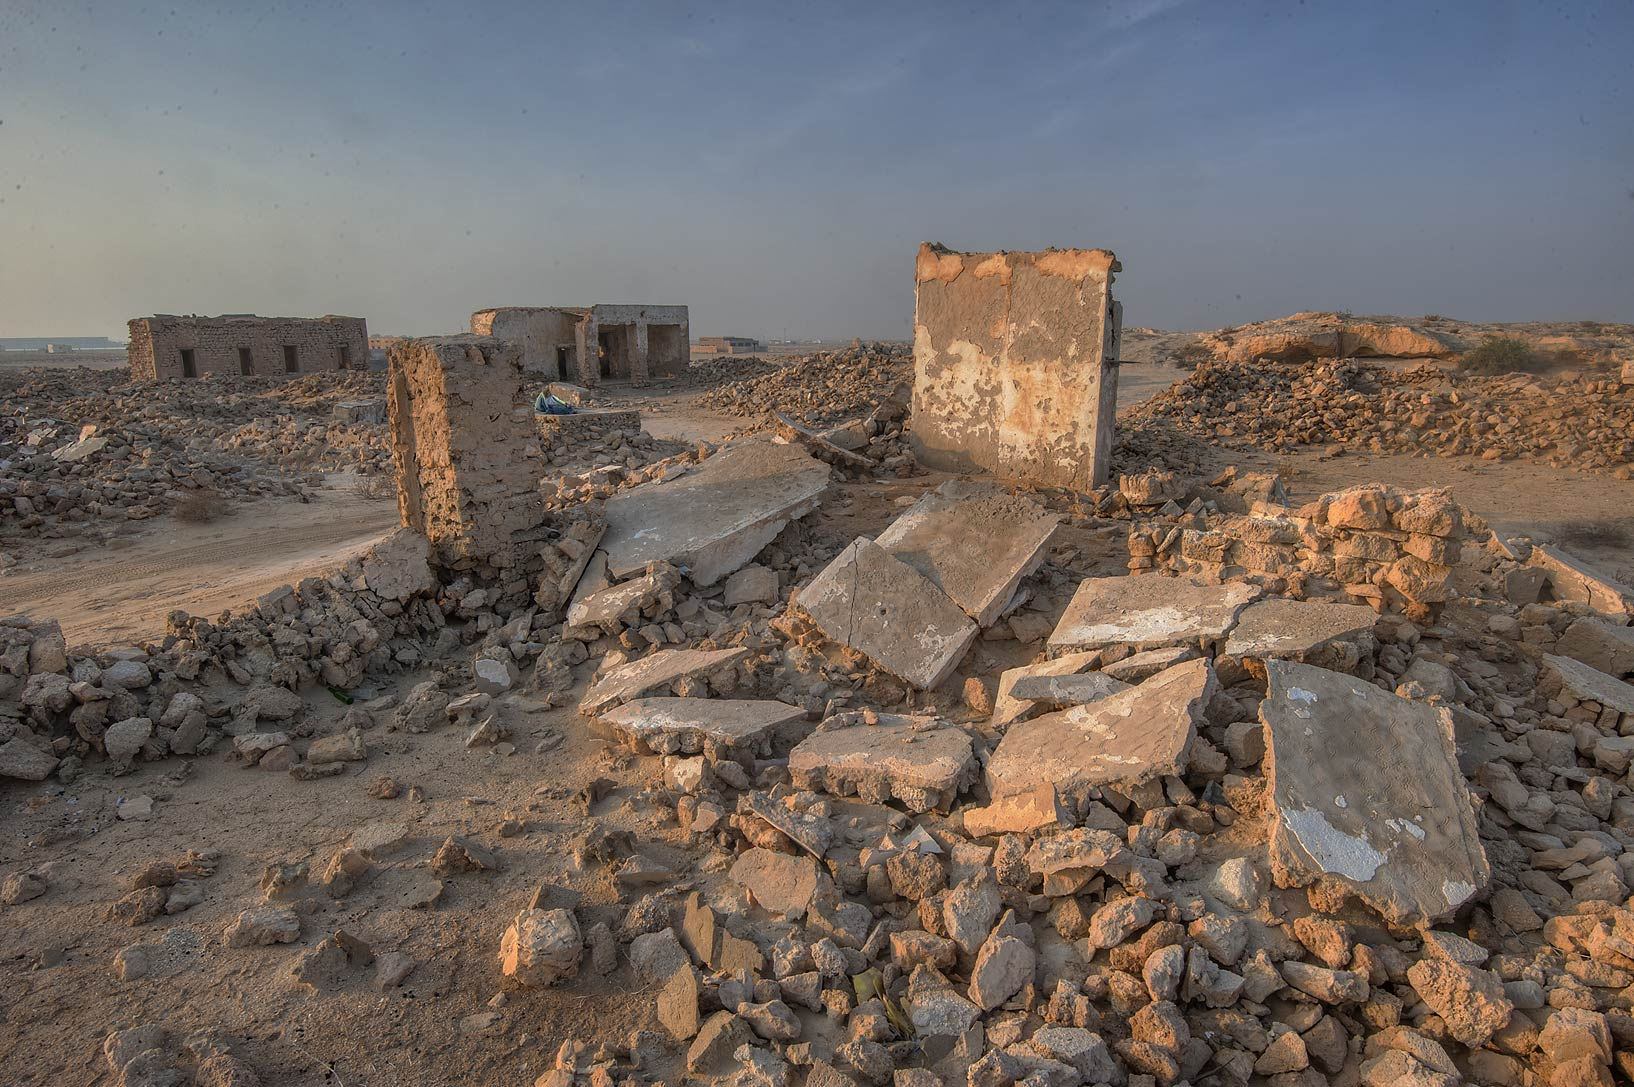 Pile of stones in old fishing village (ghost town...eastern coast, Ash Shamal area. Qatar